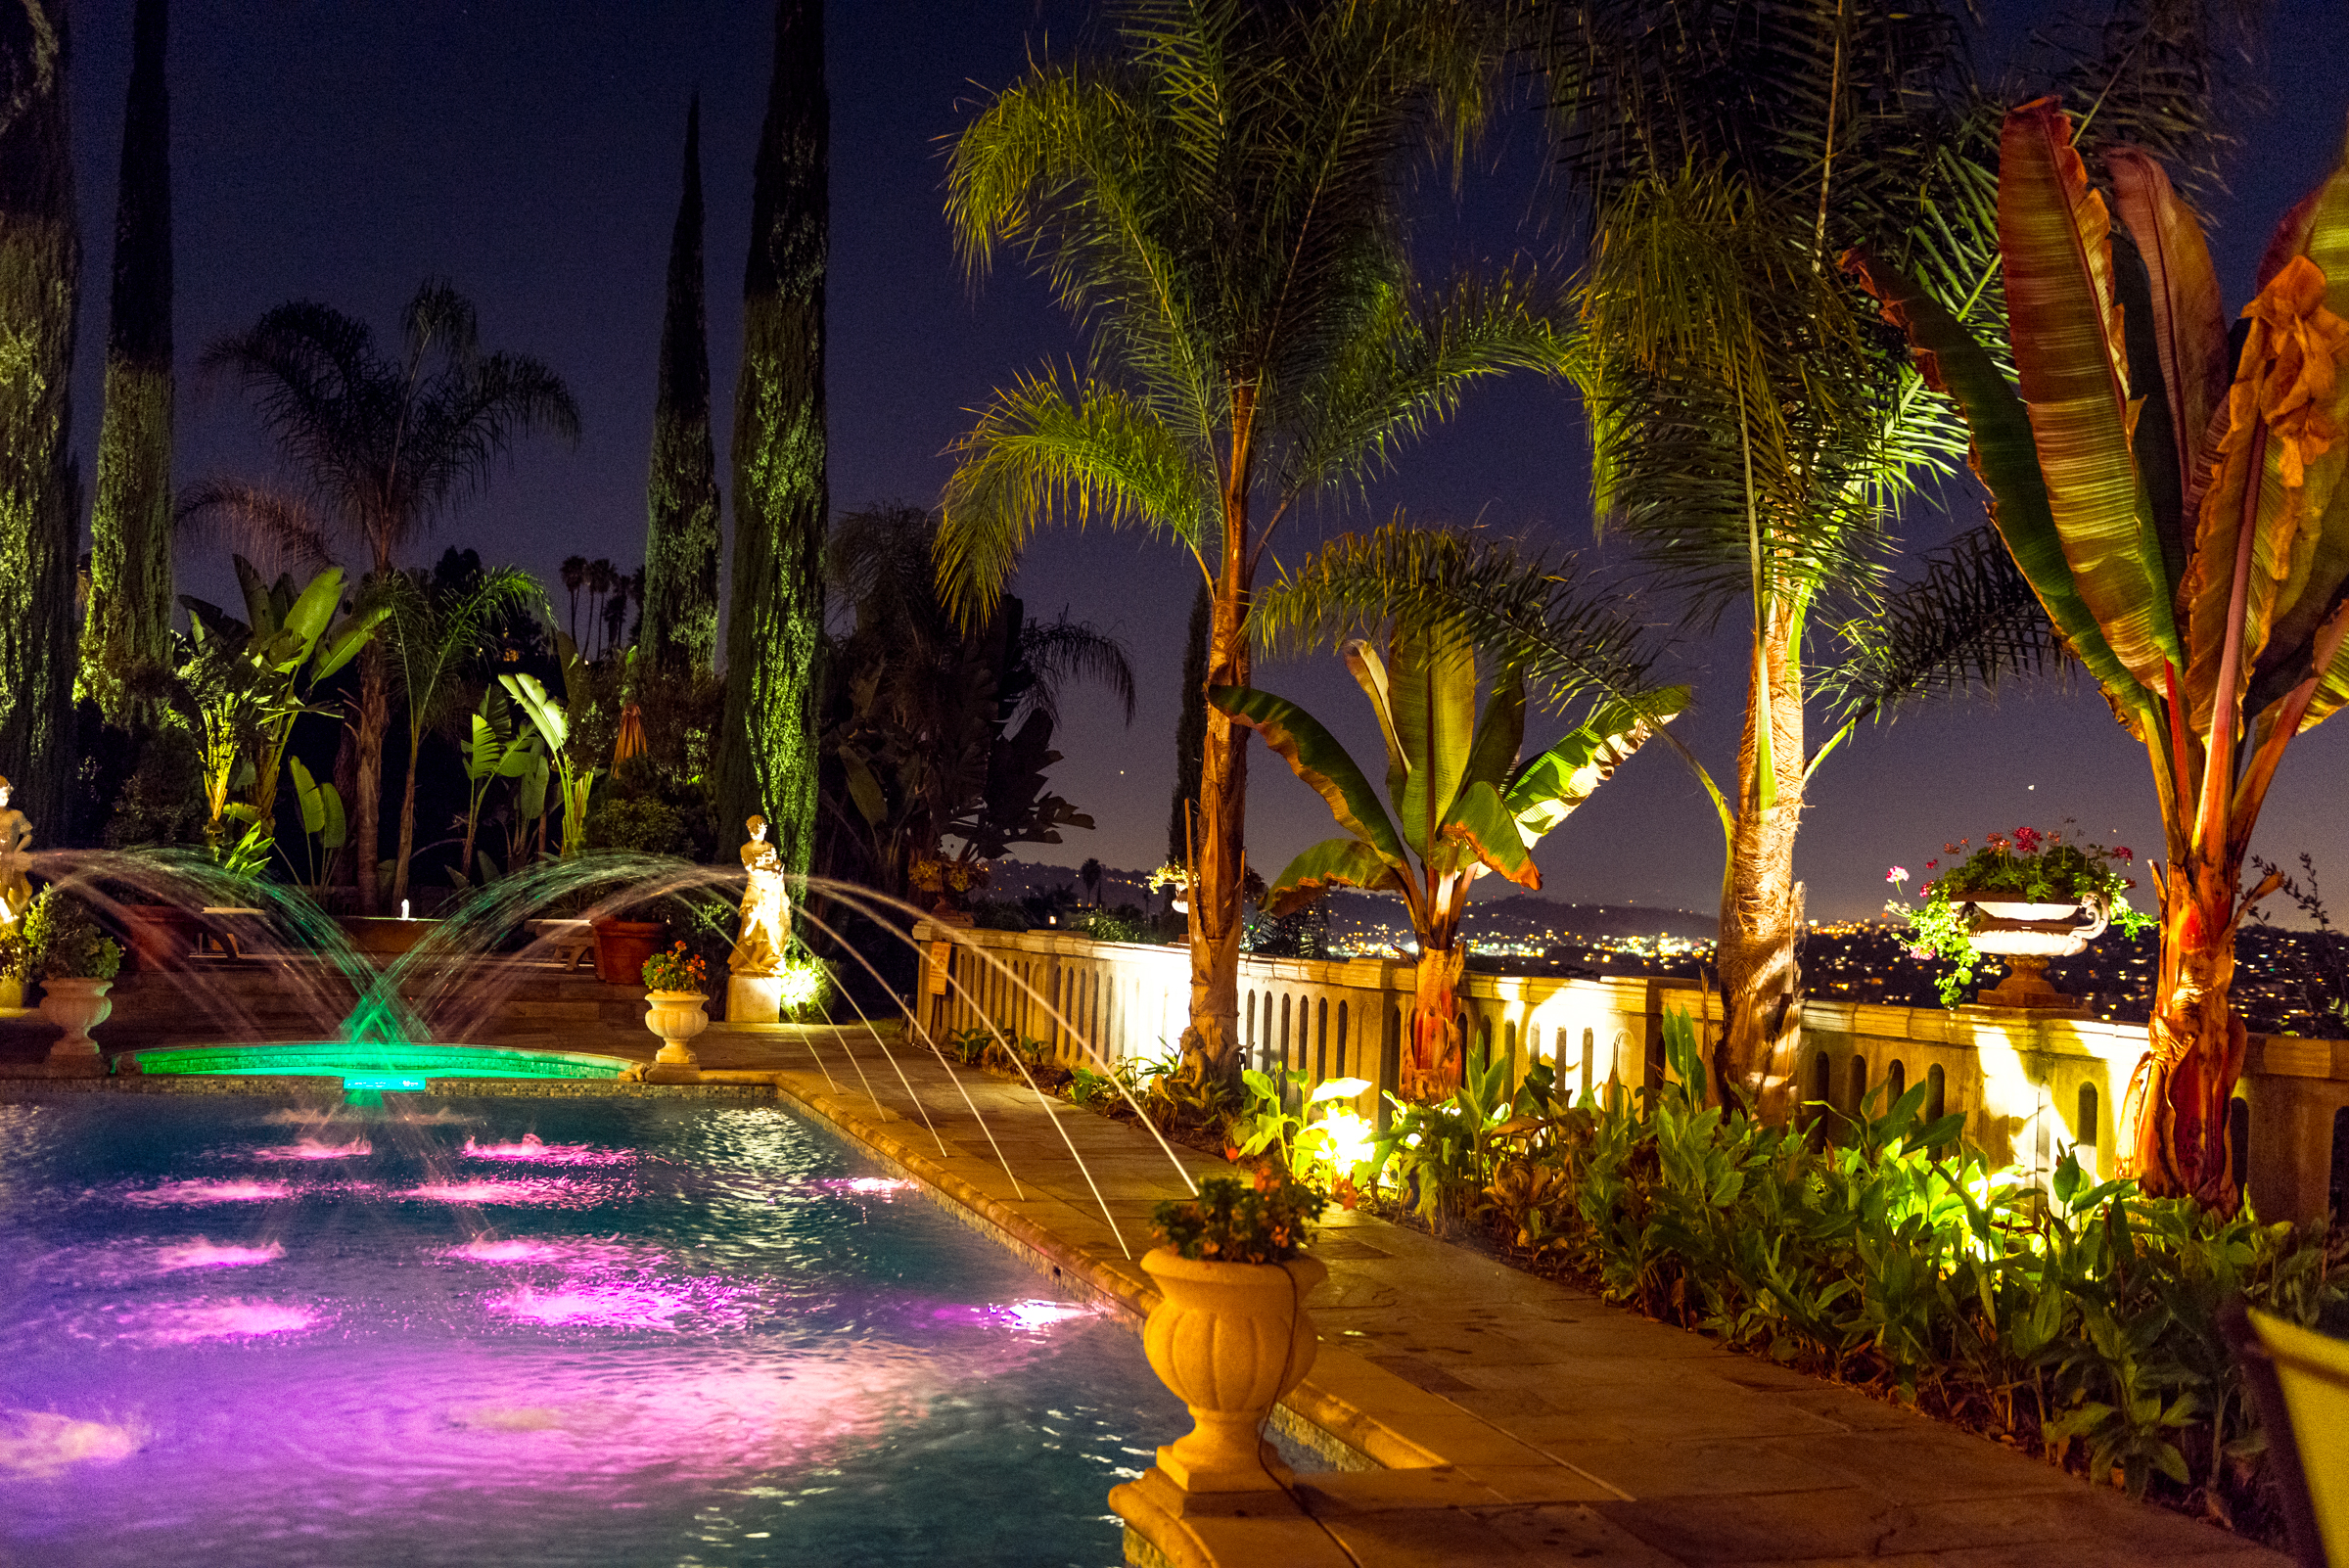 Nighttime garden in Los Angeles